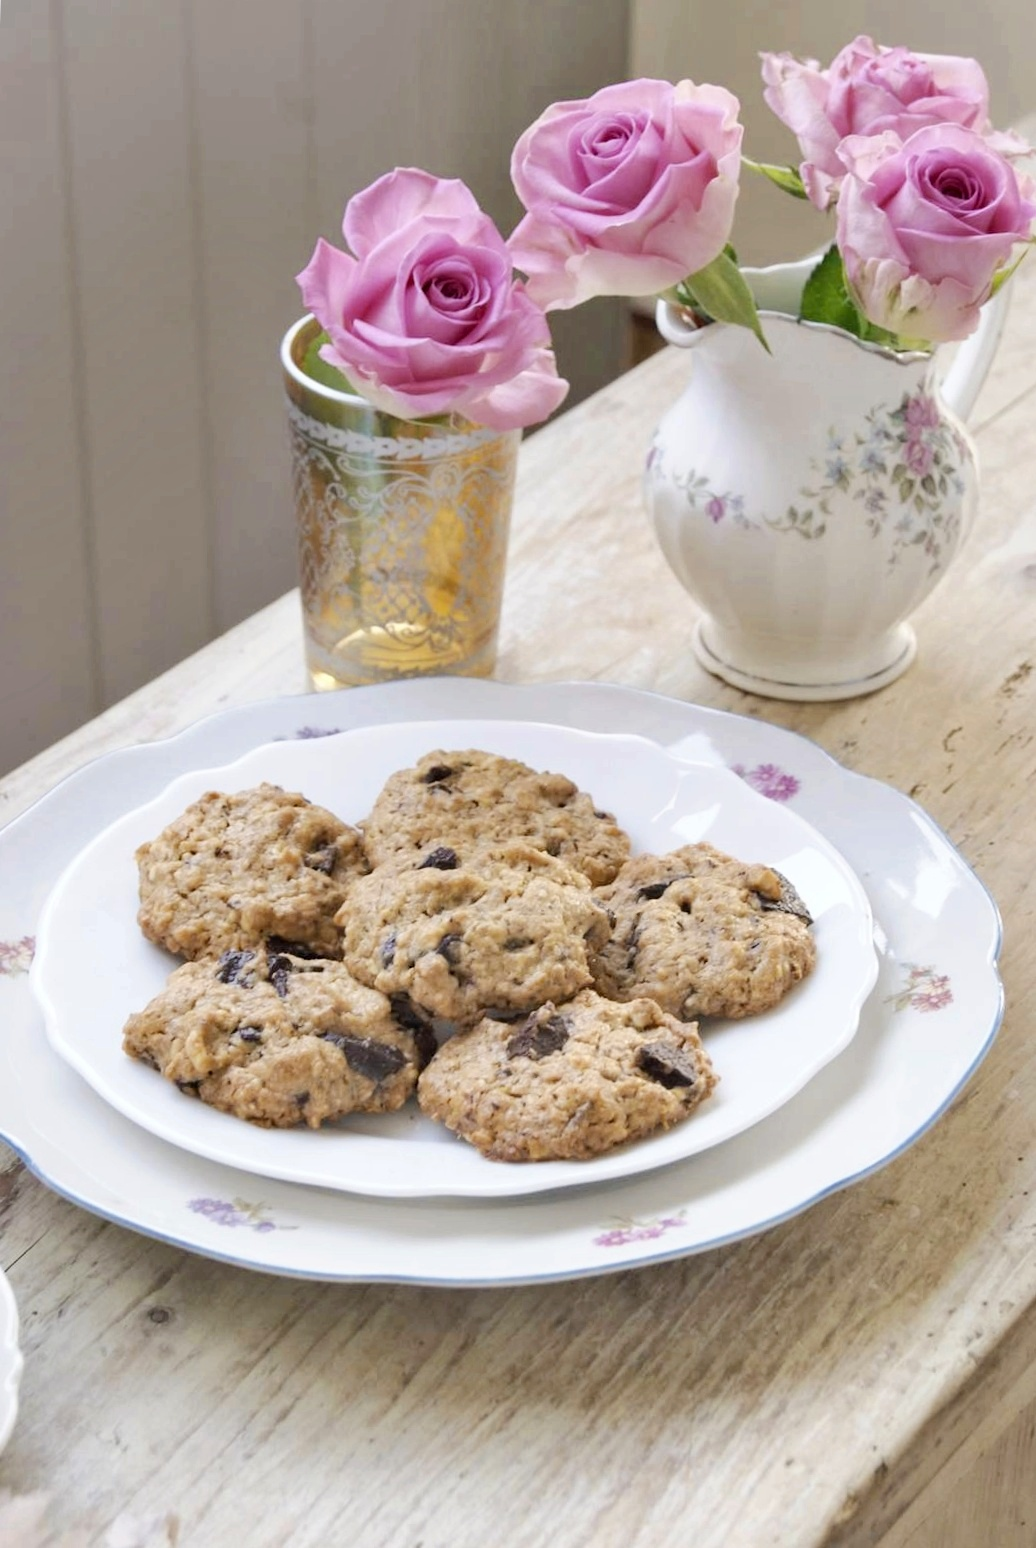 Recipe: Healthy and yummy cookies